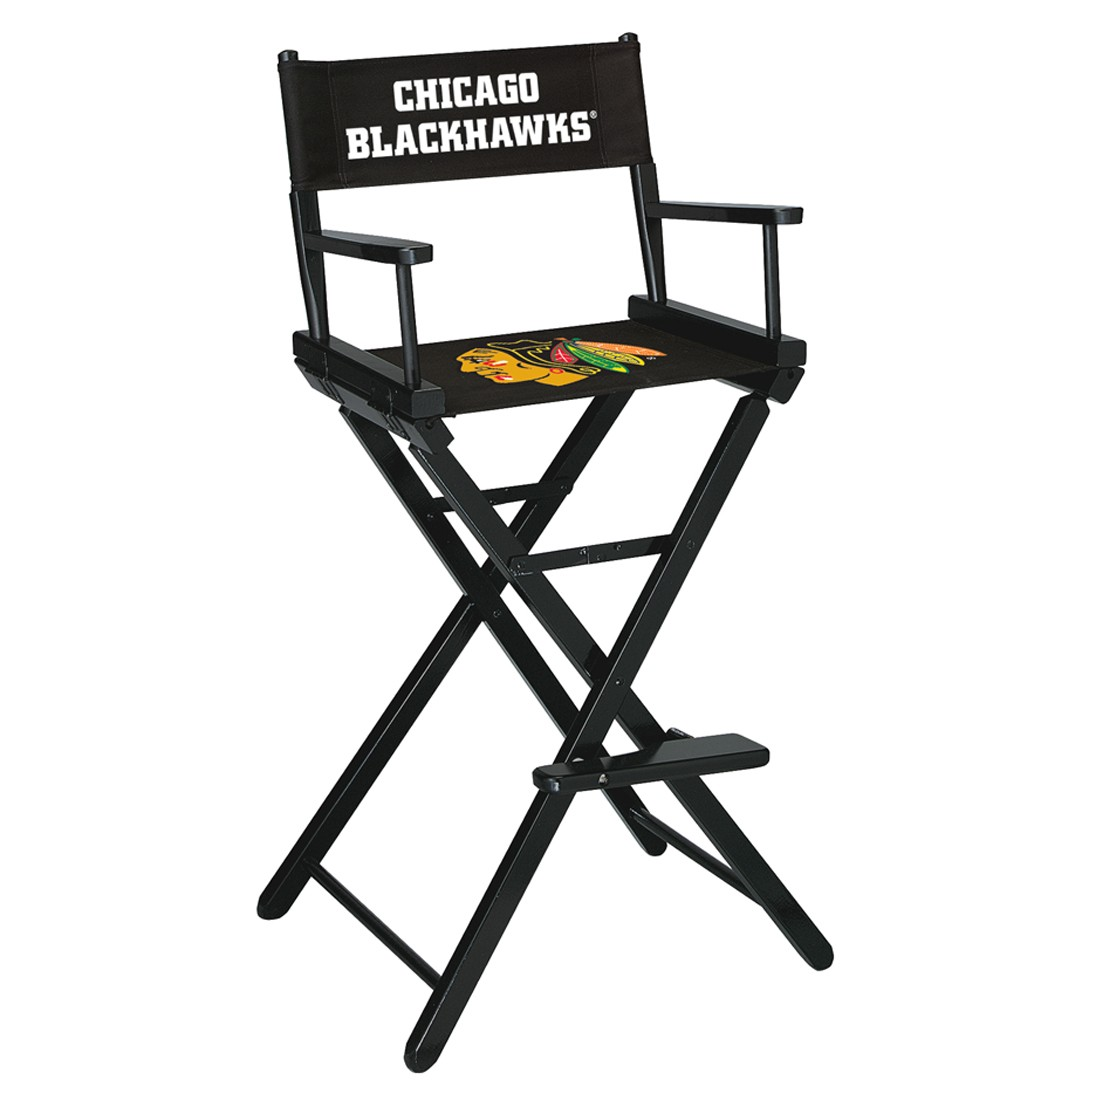 CHICAGO BLACKHAWKS® BAR HEIGHT DIRECTORS CHAIR